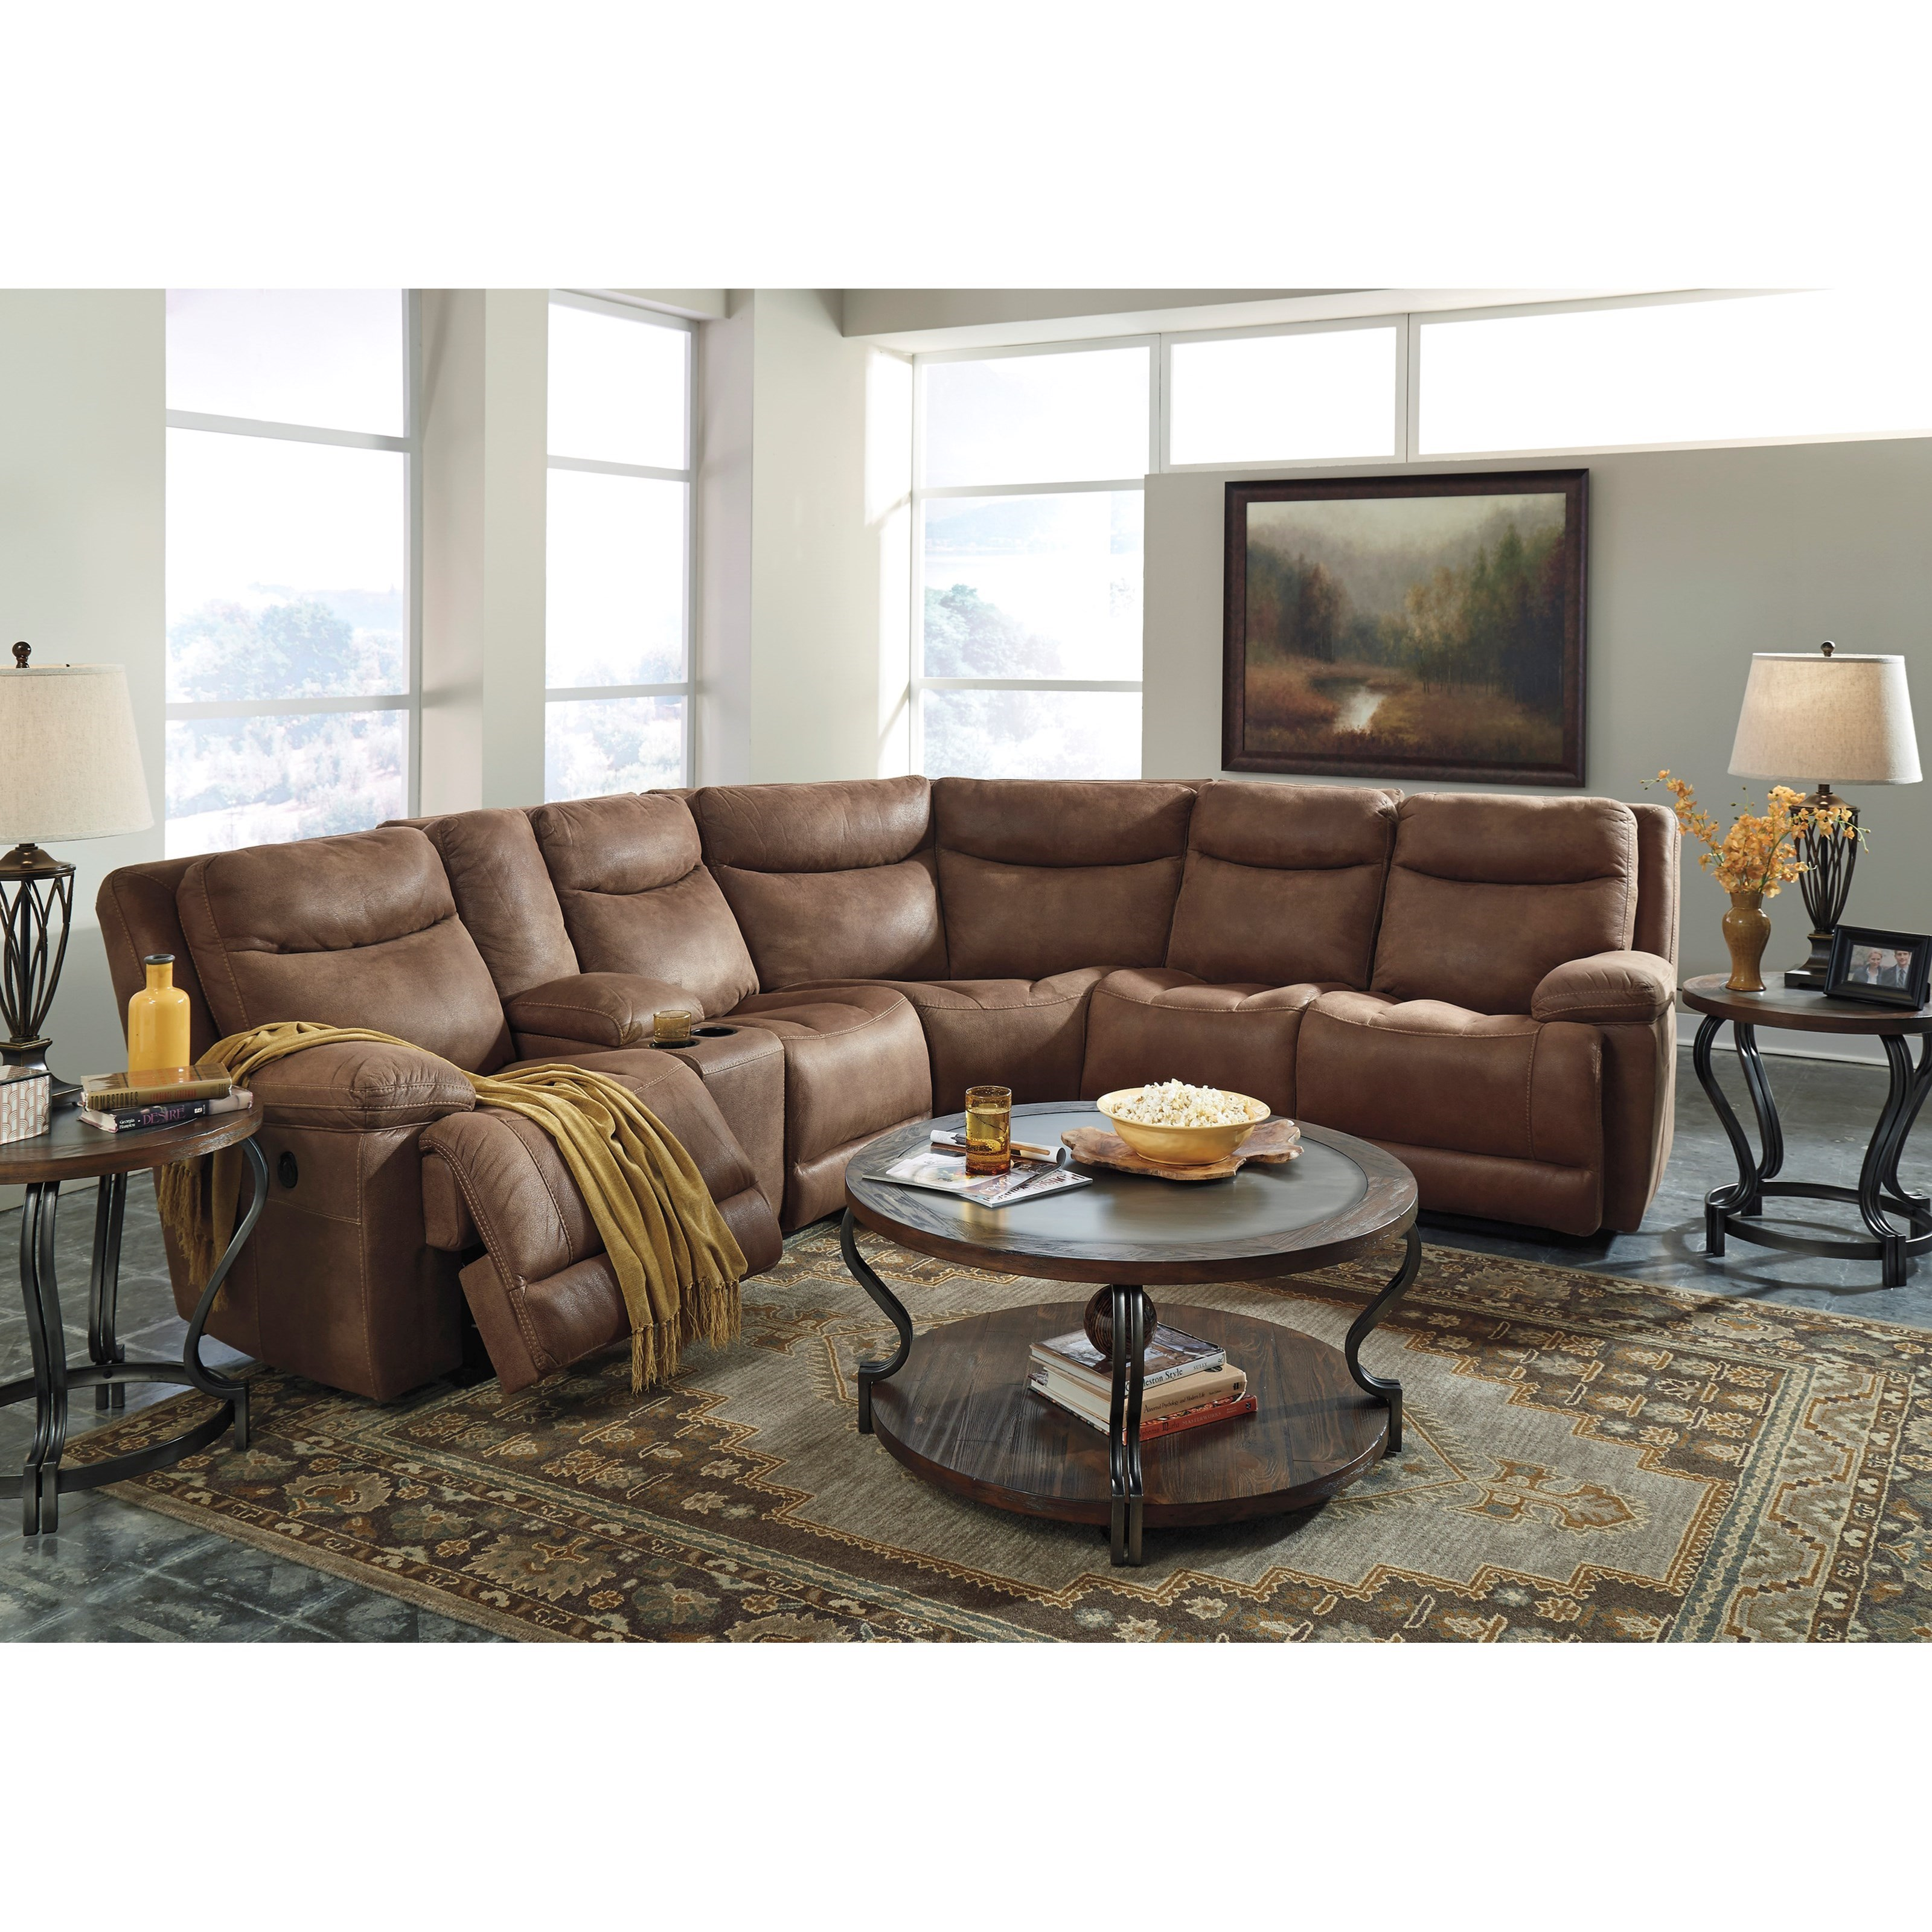 Power Reclining Sectional W/ Storage Console